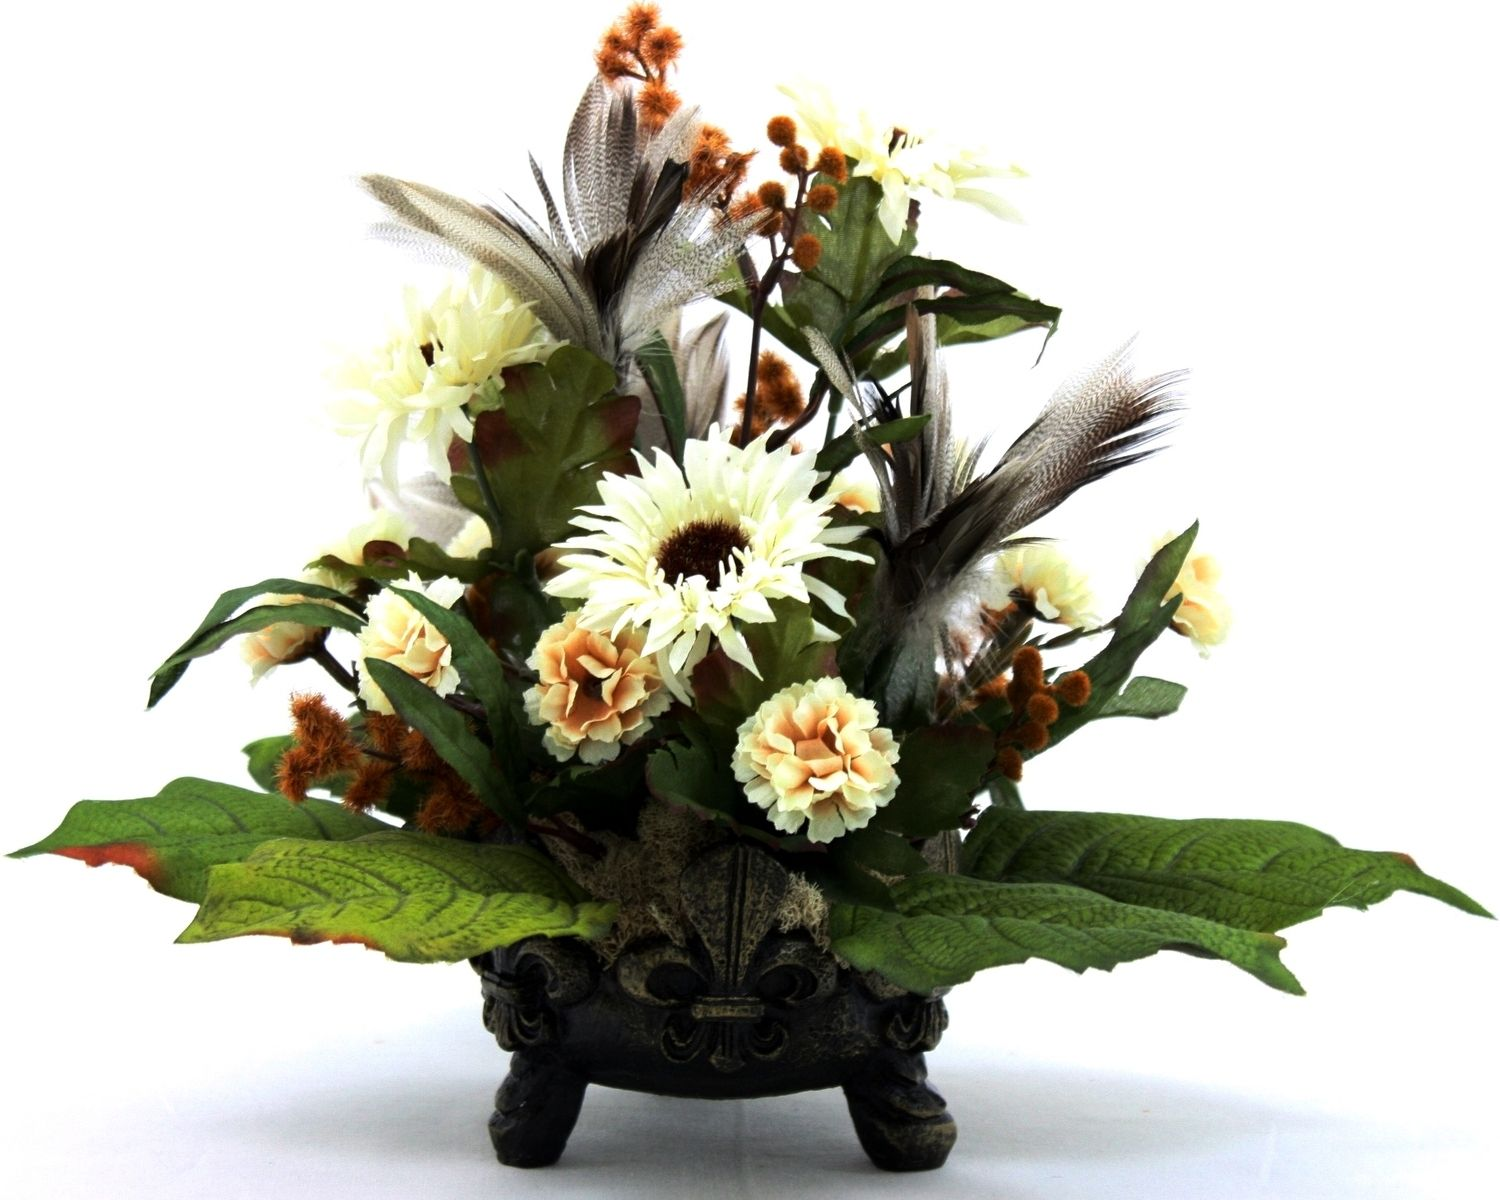 Custom Made Unique Silk Flower Arrangement Table Centerpiece Home Decorating Ideas